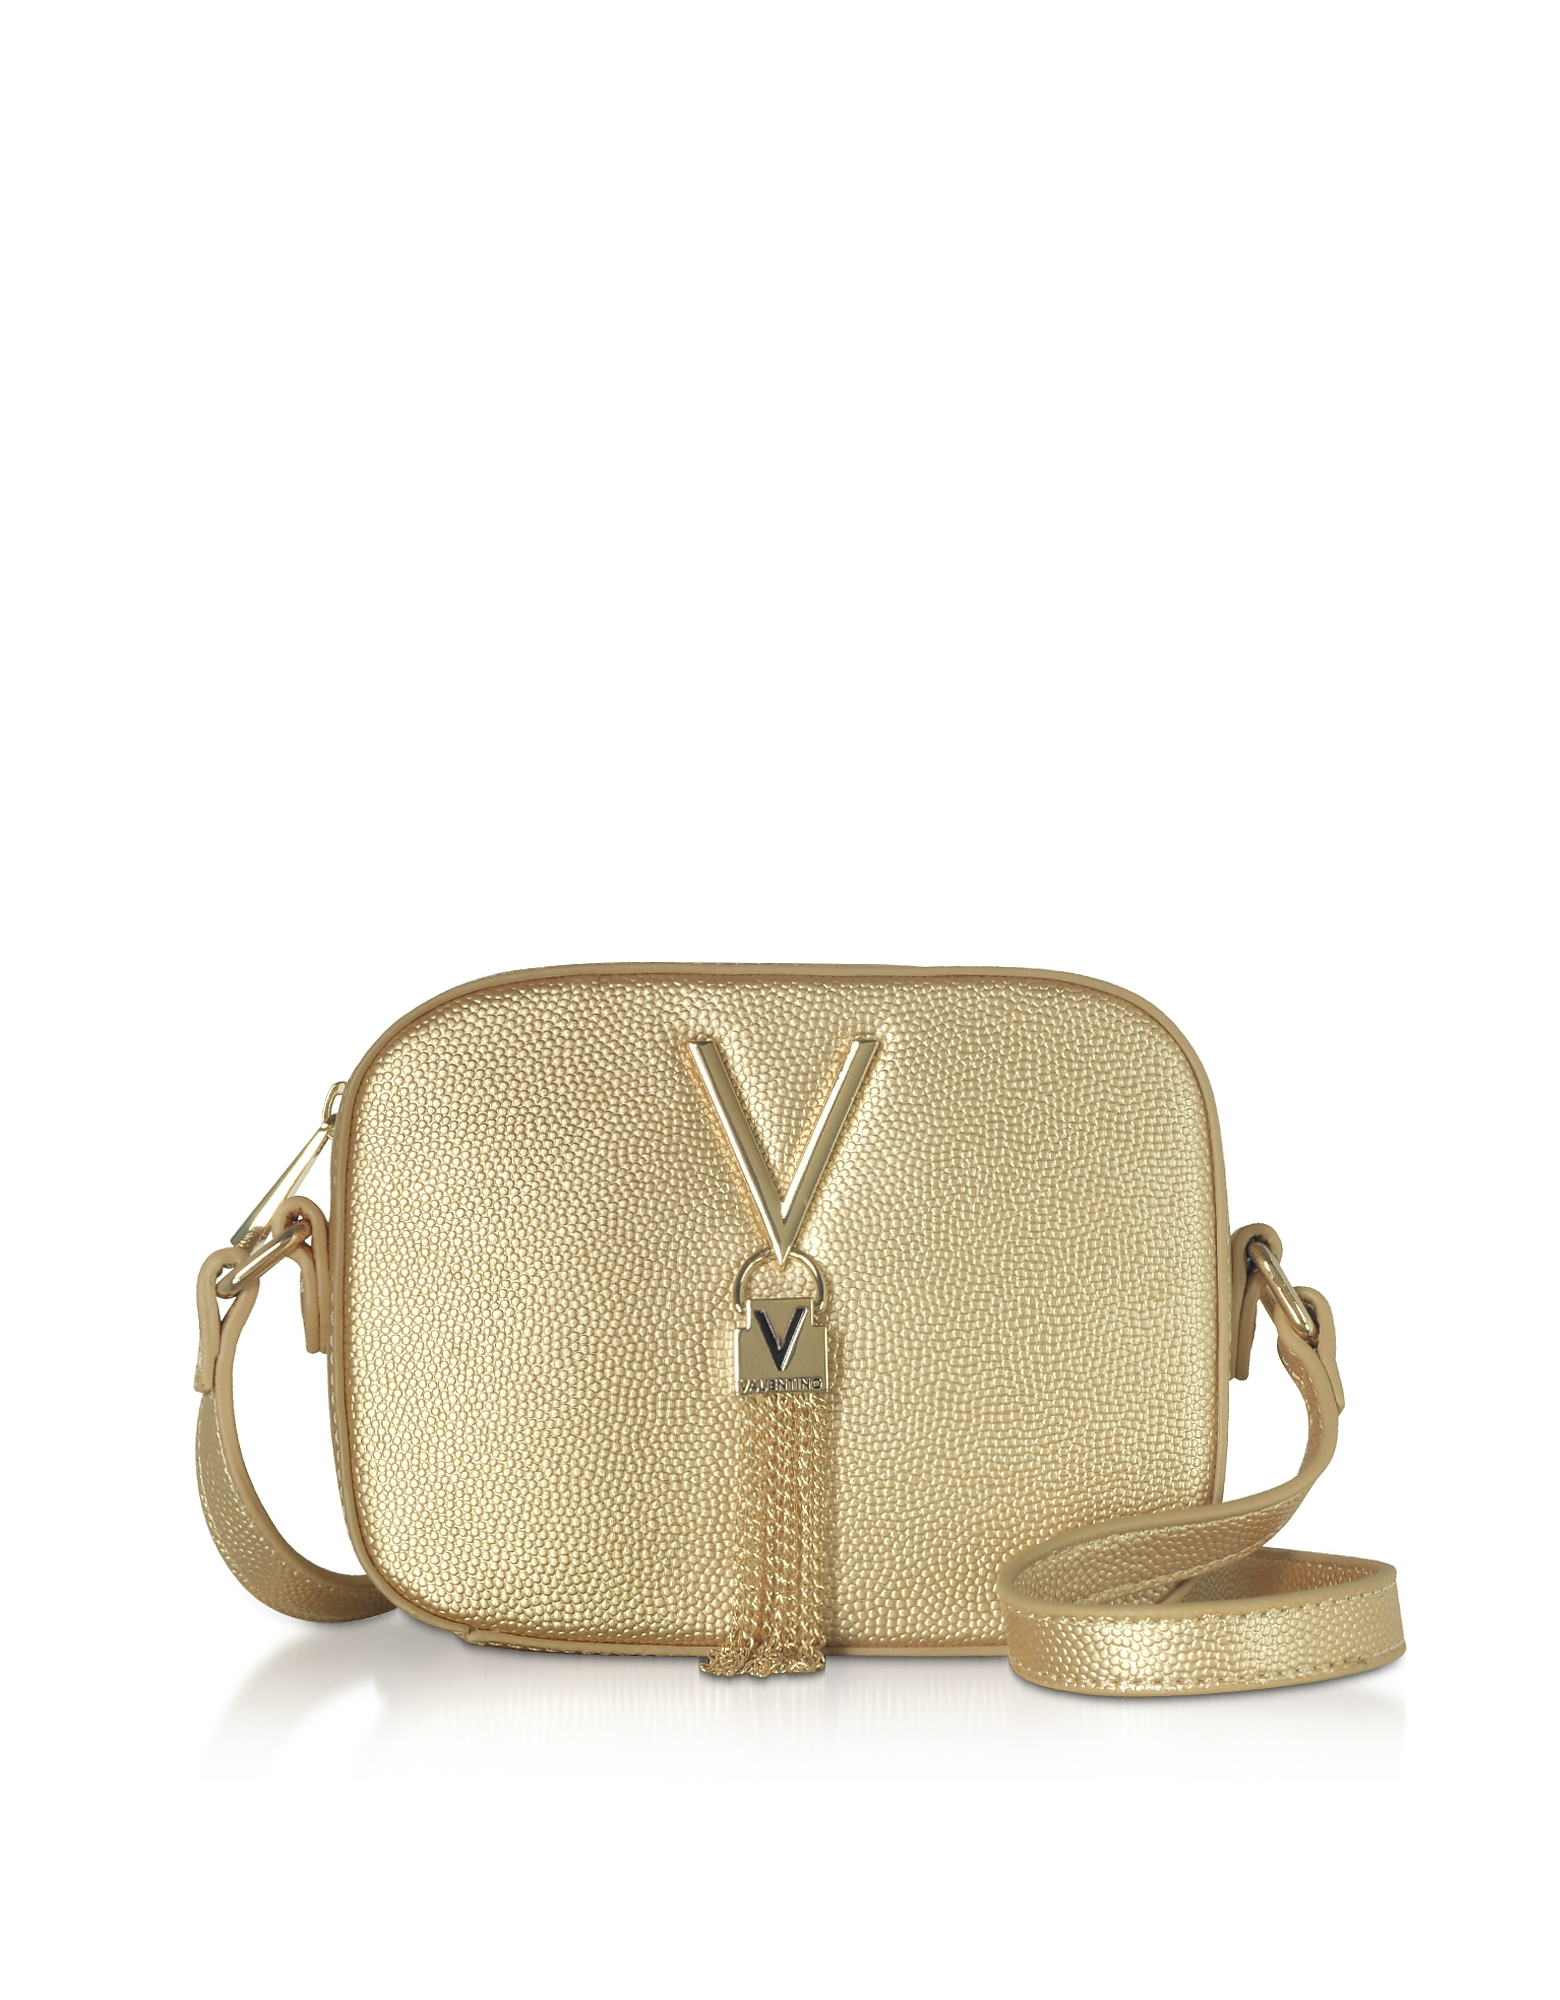 Gold Lizard Embossed Eco Leather Divina Mini Crossbody Bag